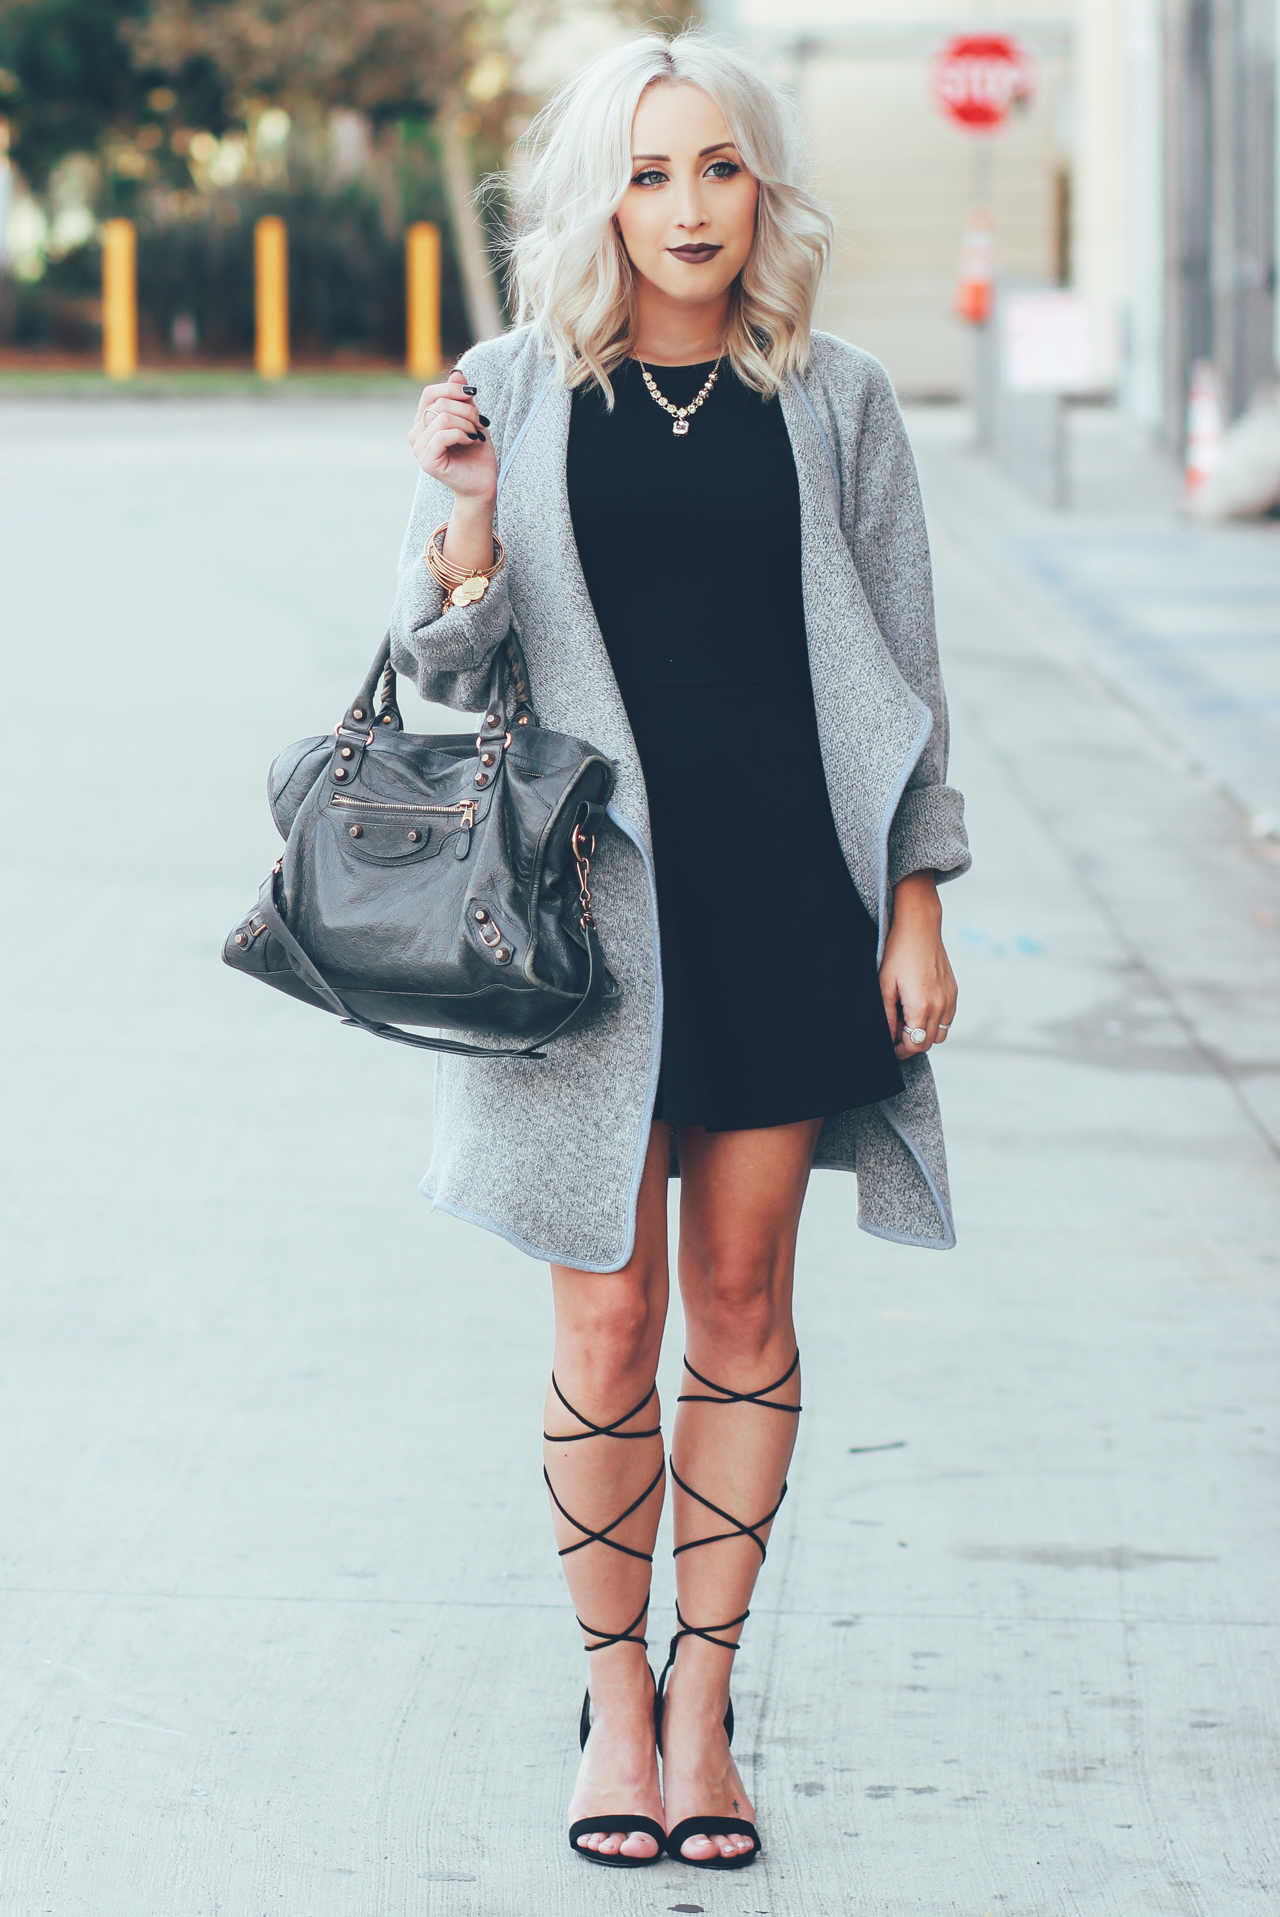 Lace Up Those Heels - BLONDIE IN THE CITY